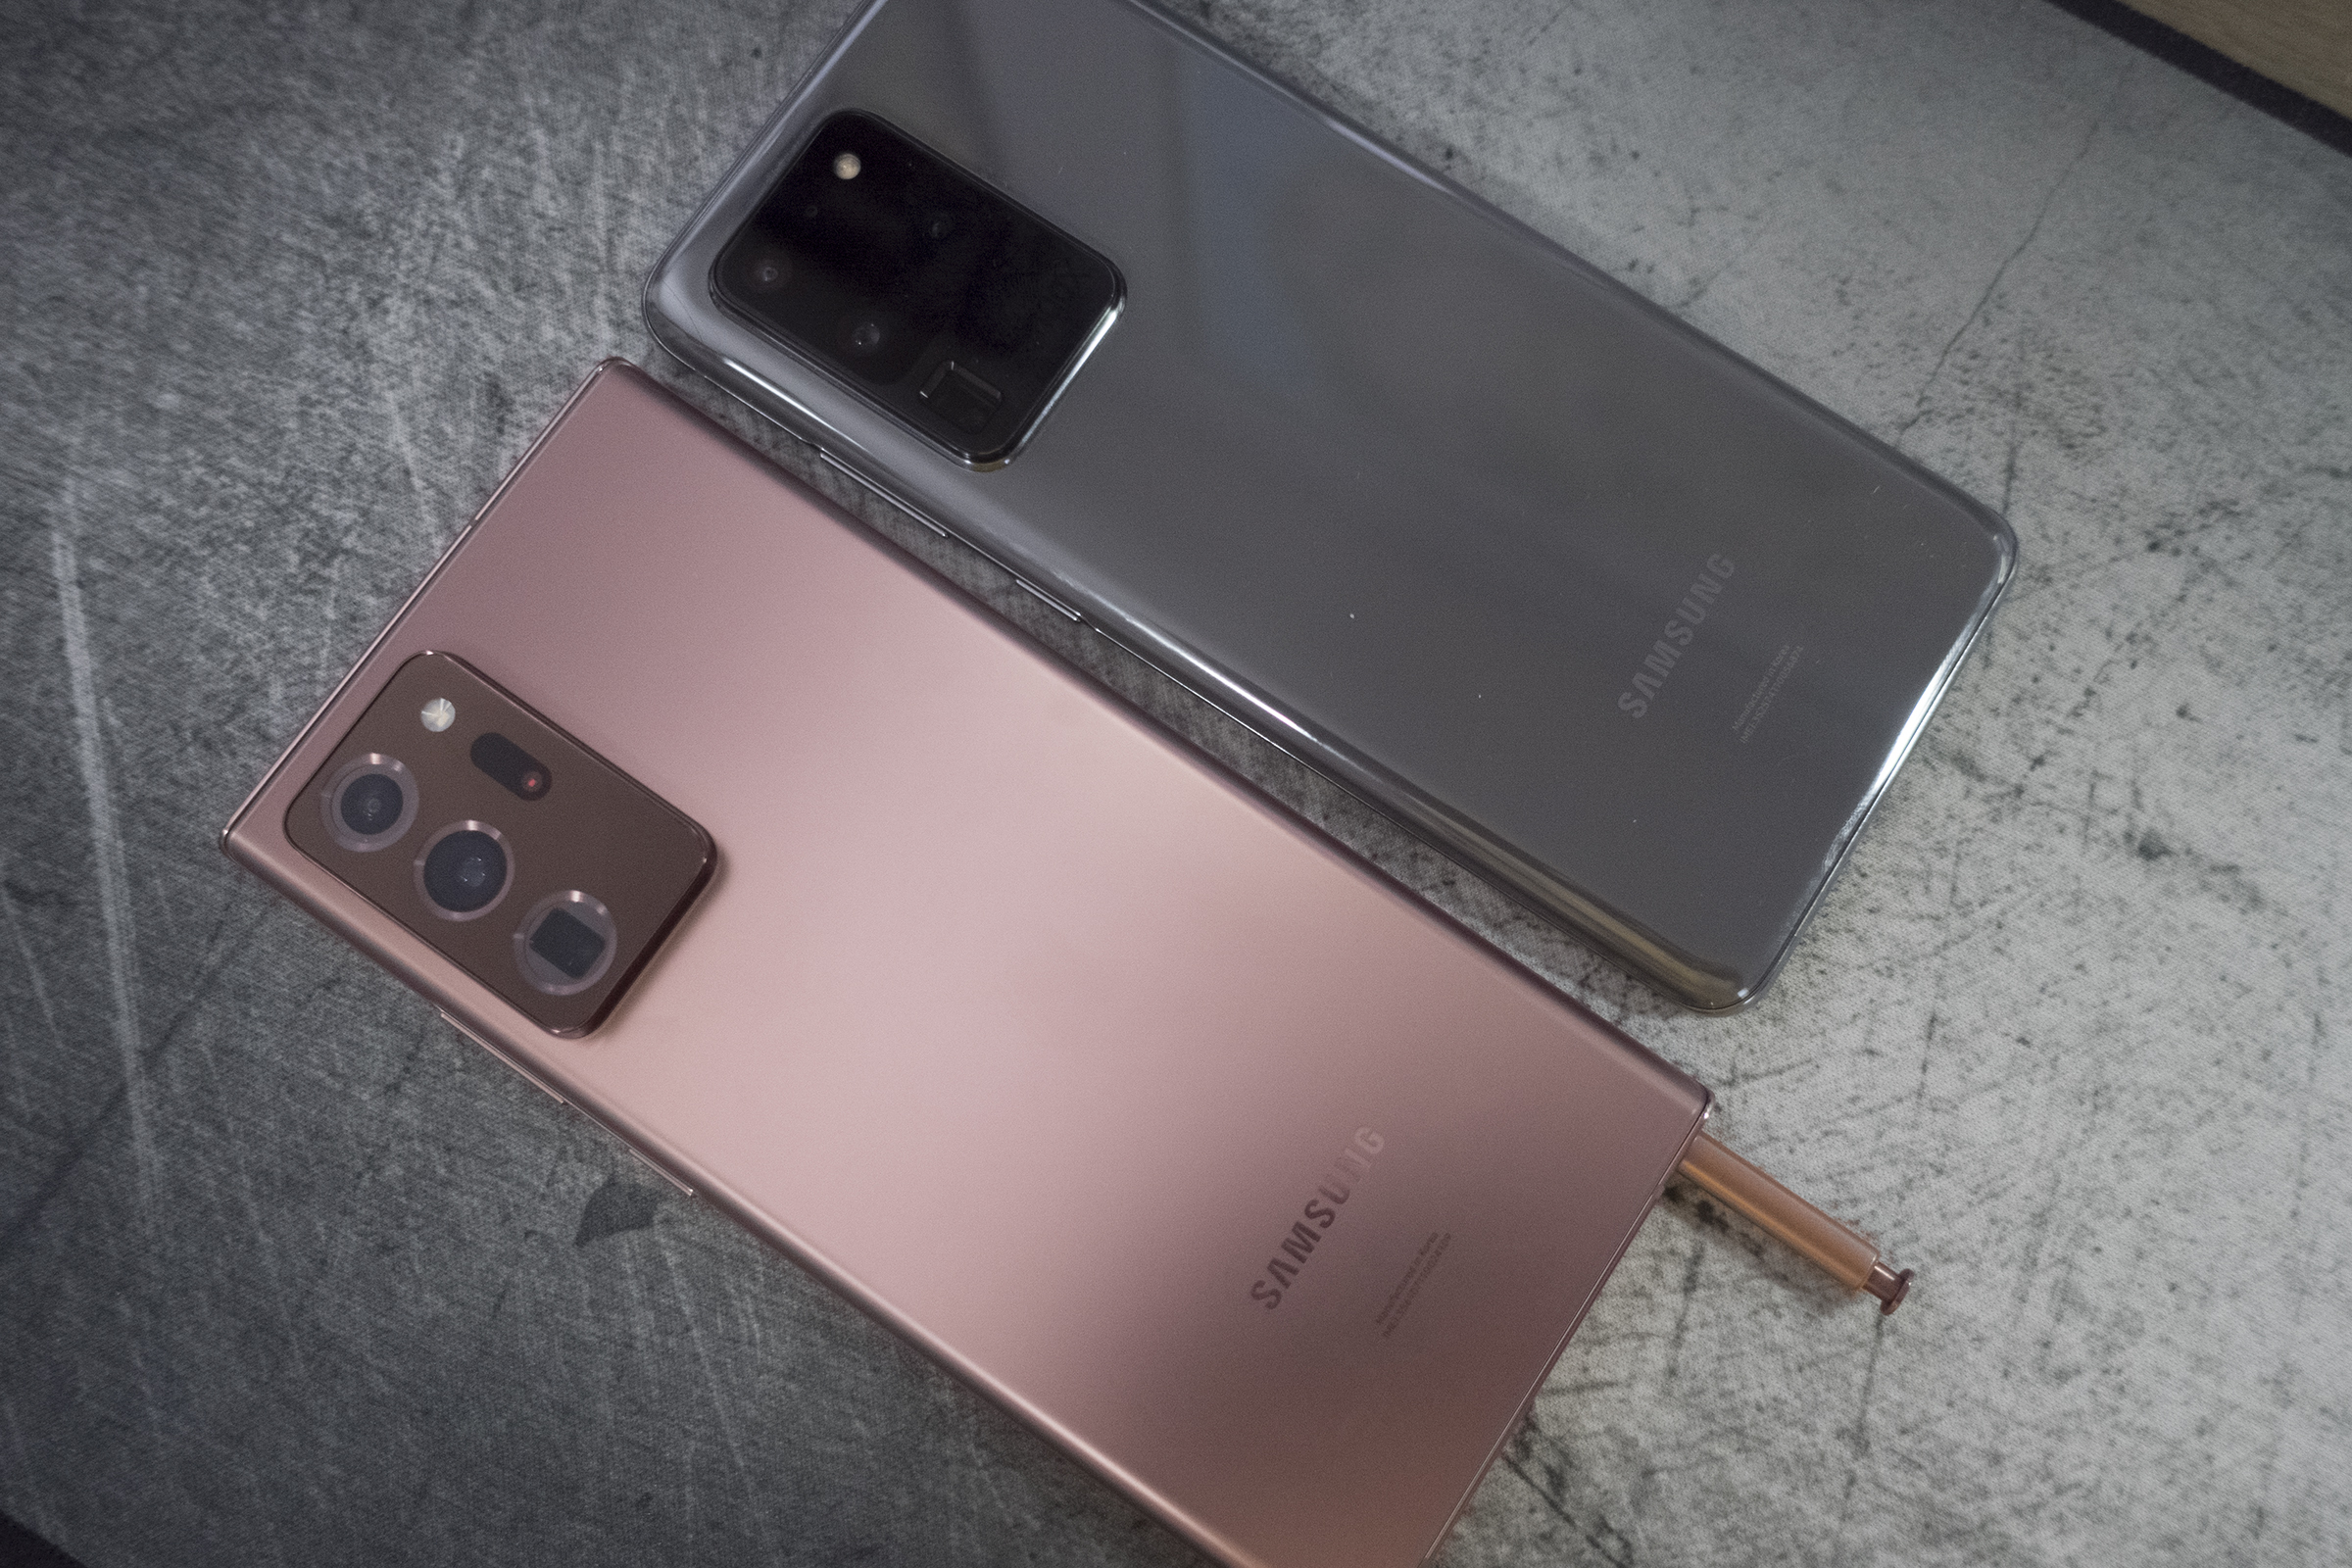 The Samsung Galaxy S20 and Note 20 series receive a new camera mode with their latest software updates